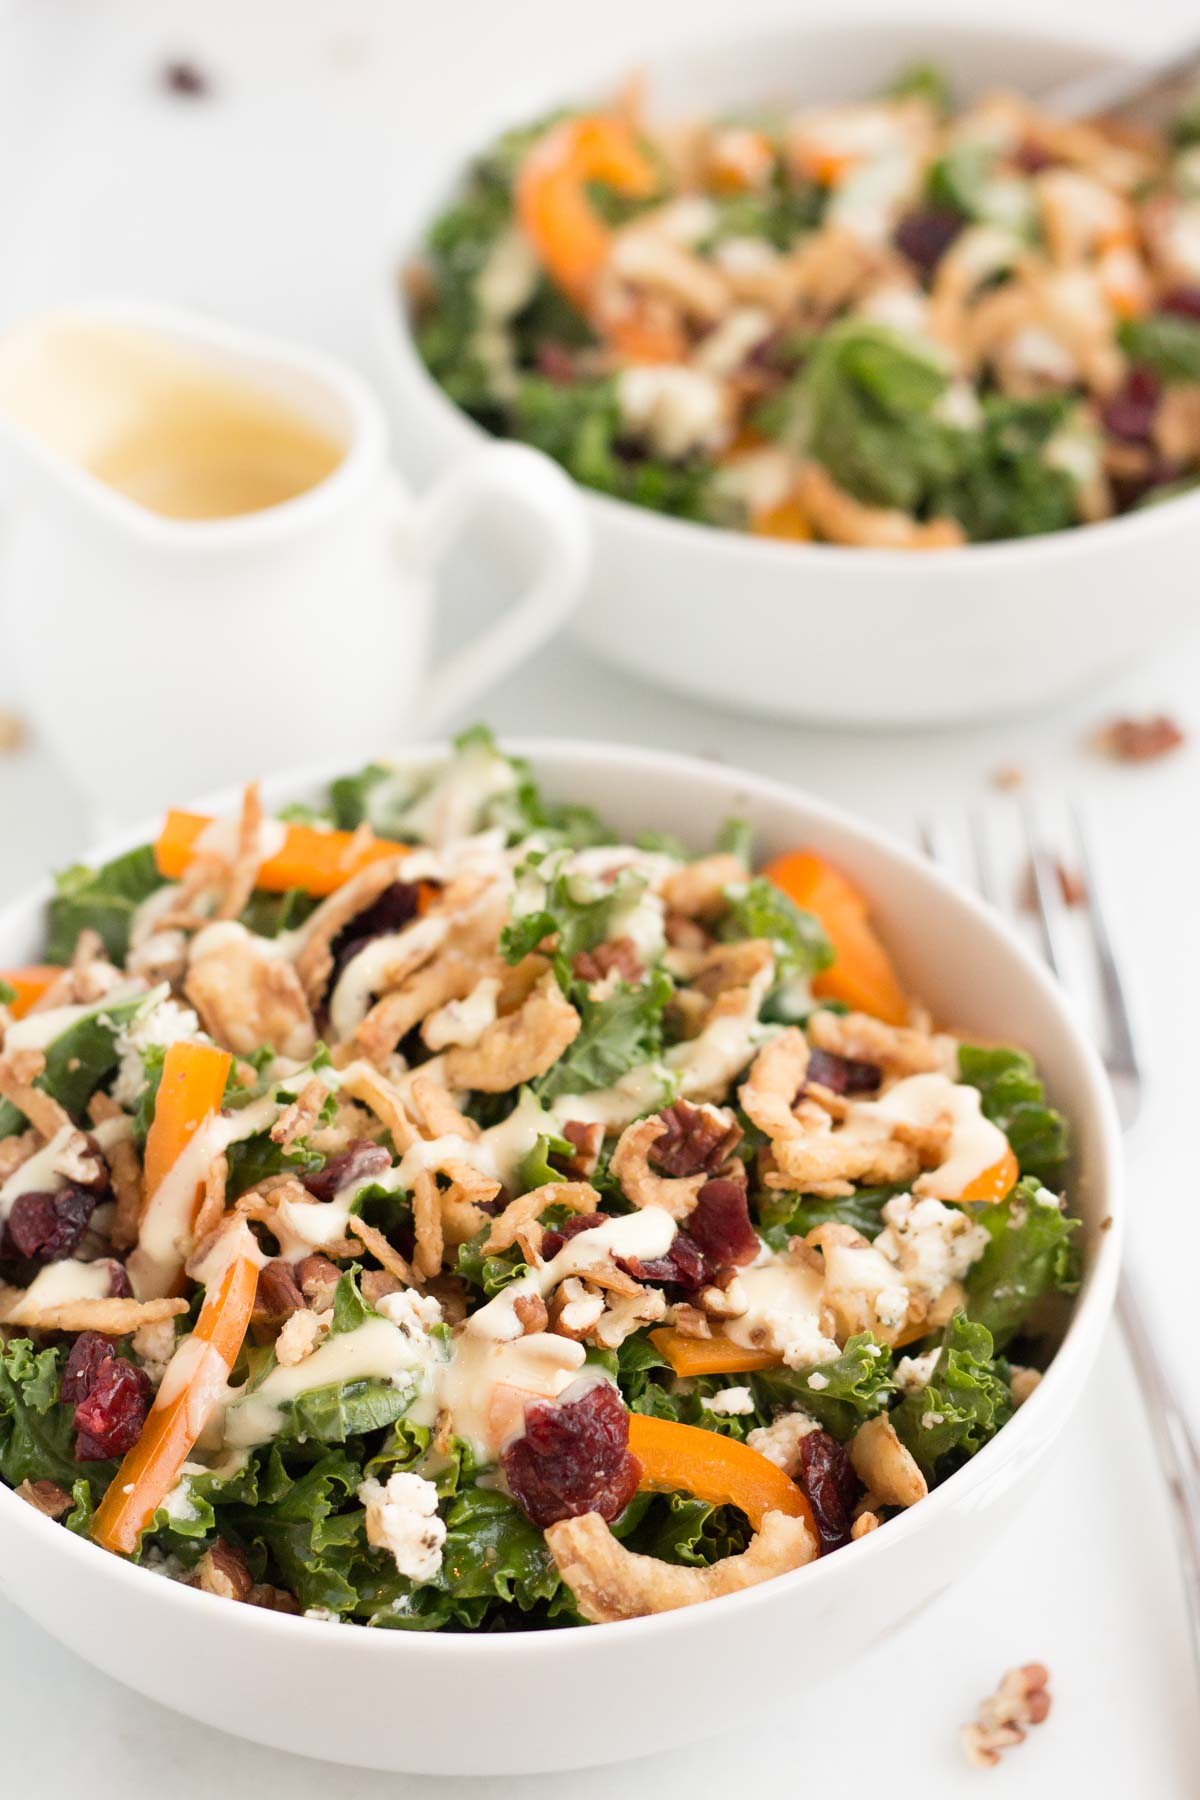 cranberry pecan kale salad in white bowl with white background